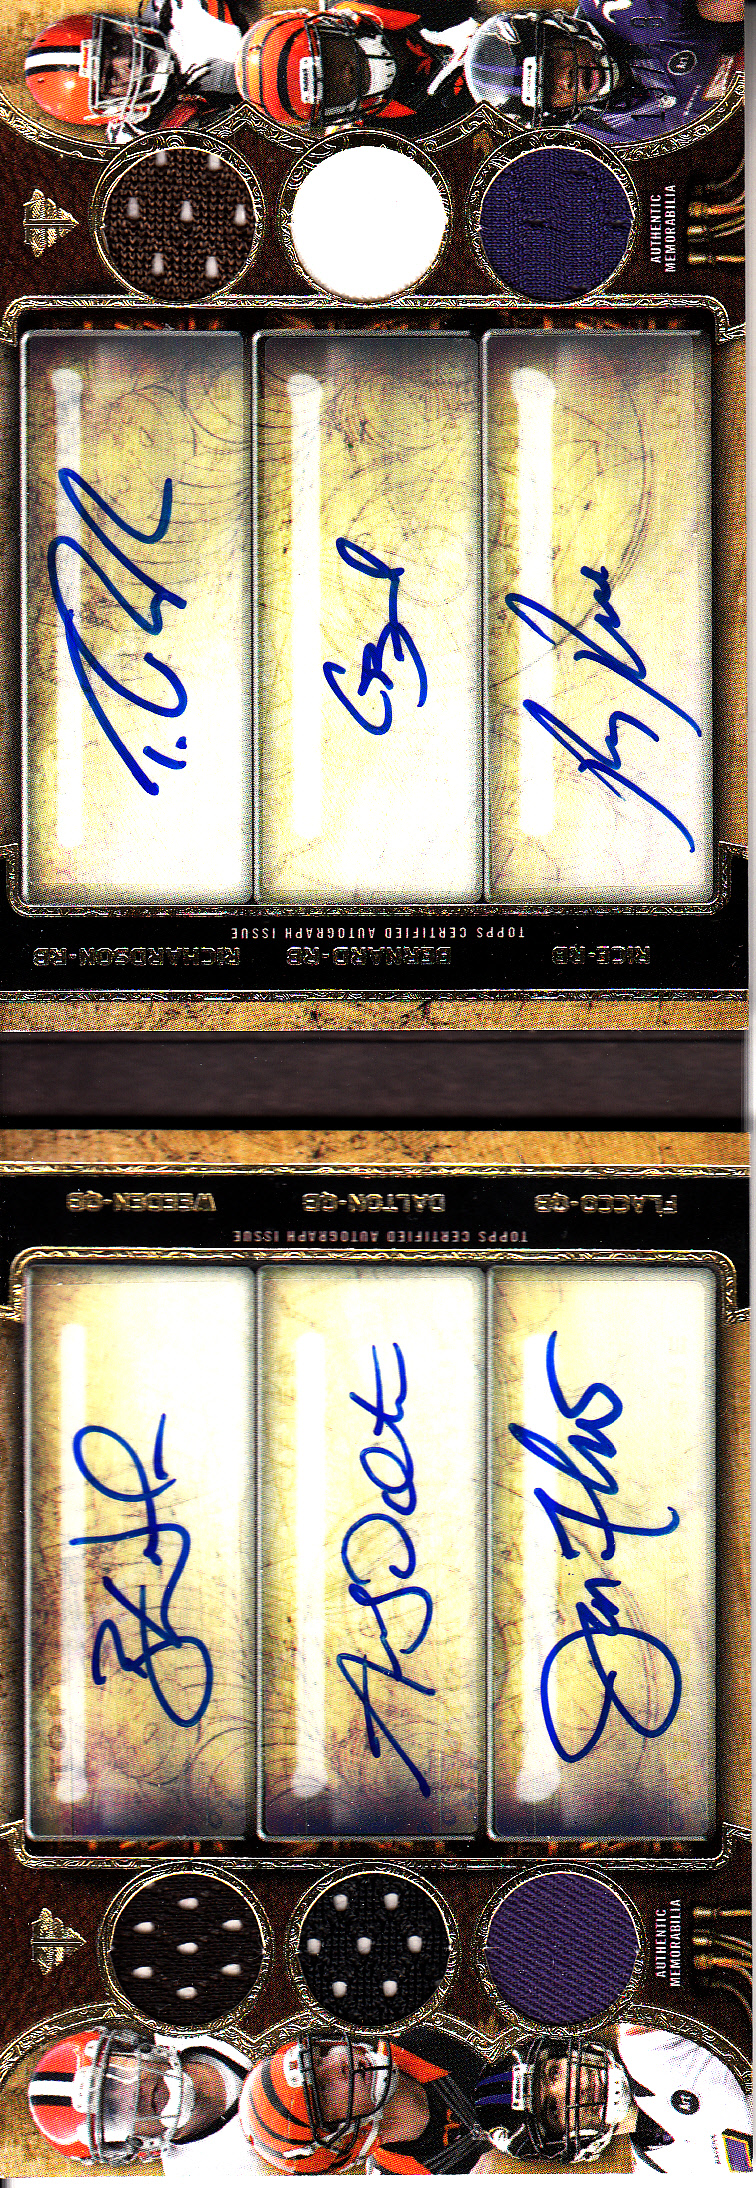 2013 Topps Triple Threads Autographed Relic Double Trios Gold #TTARDCWRDBFR Andy Dalton/Brandon Weeden/Joe Flacco/Trent Richardson/Ray Rice/Giovani Bernard